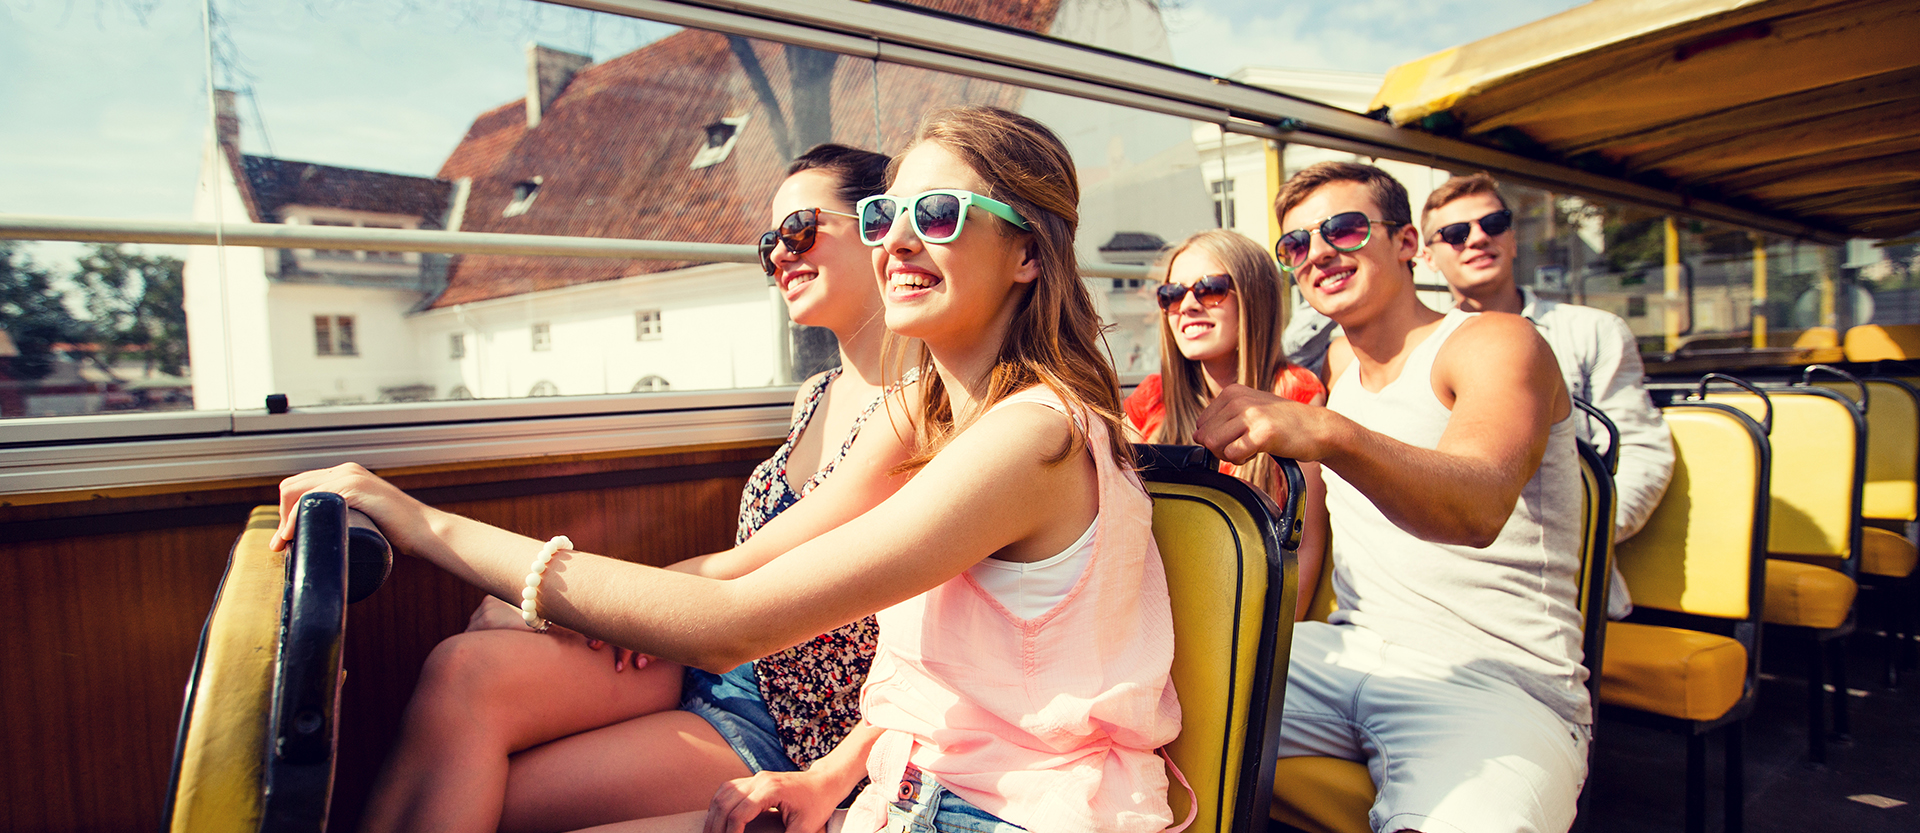 Group of young friends all wearing sunglasses on an open air tour bus in the European countryside.